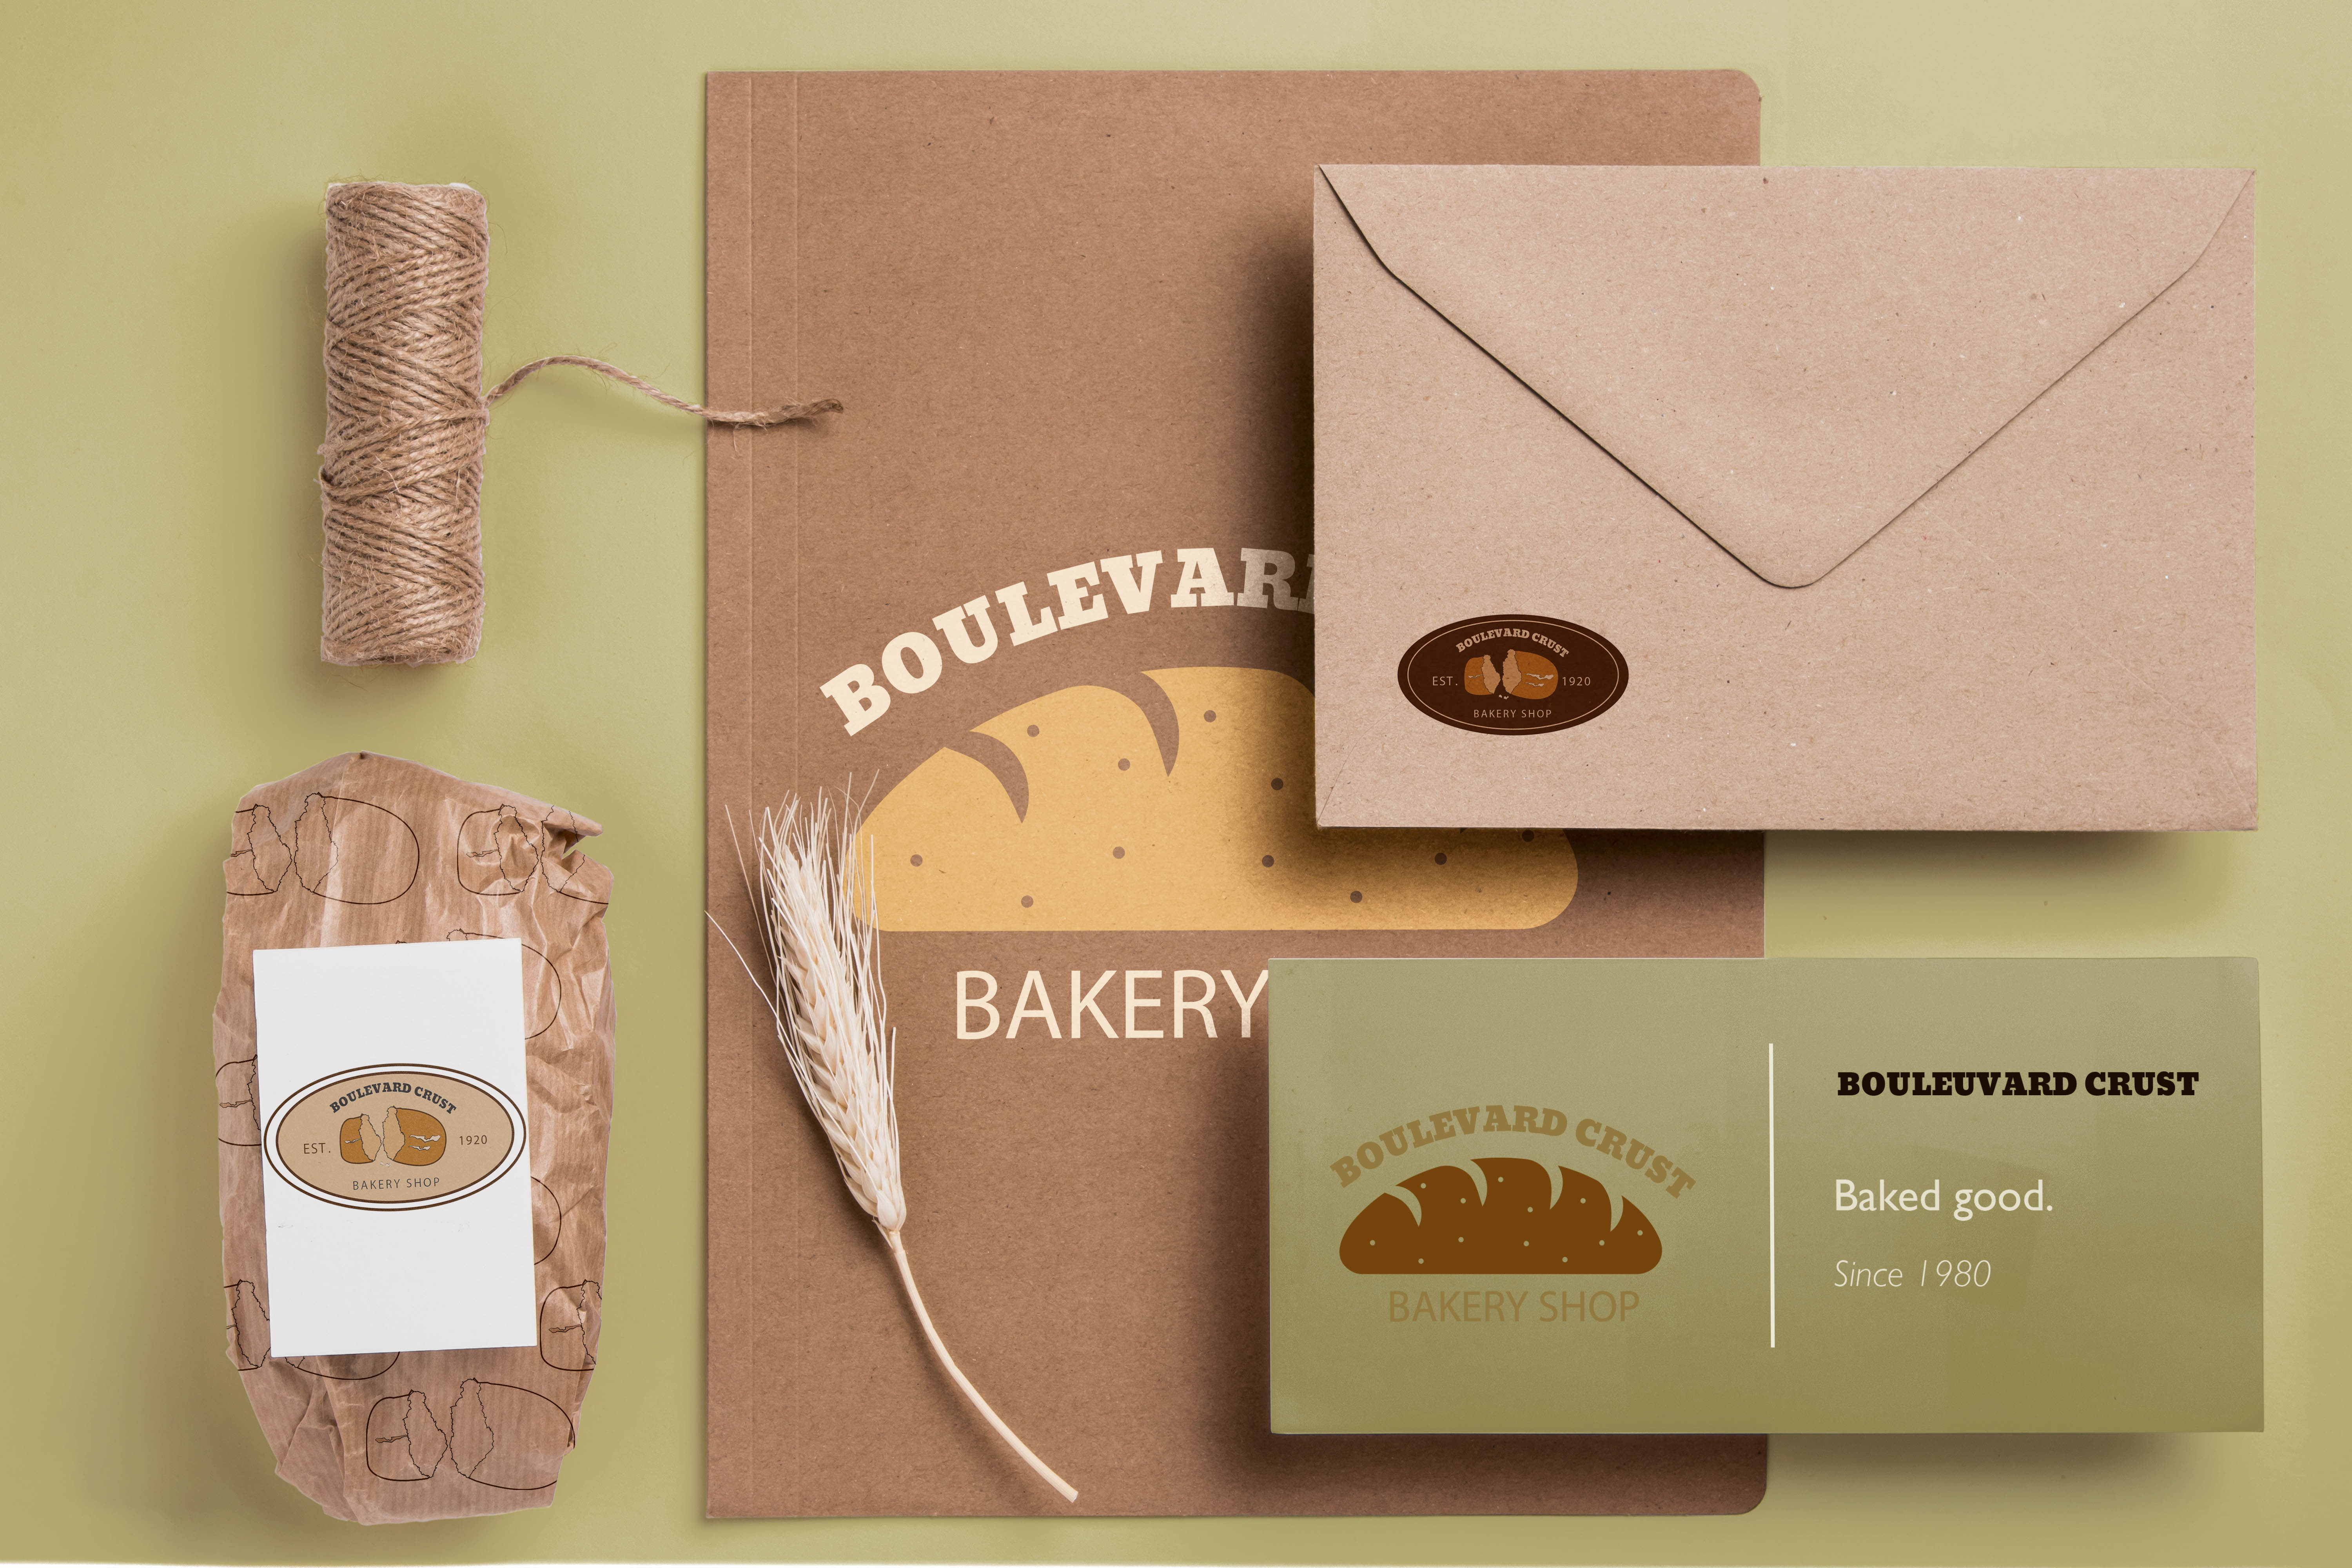 New Bakery Shop brand identity